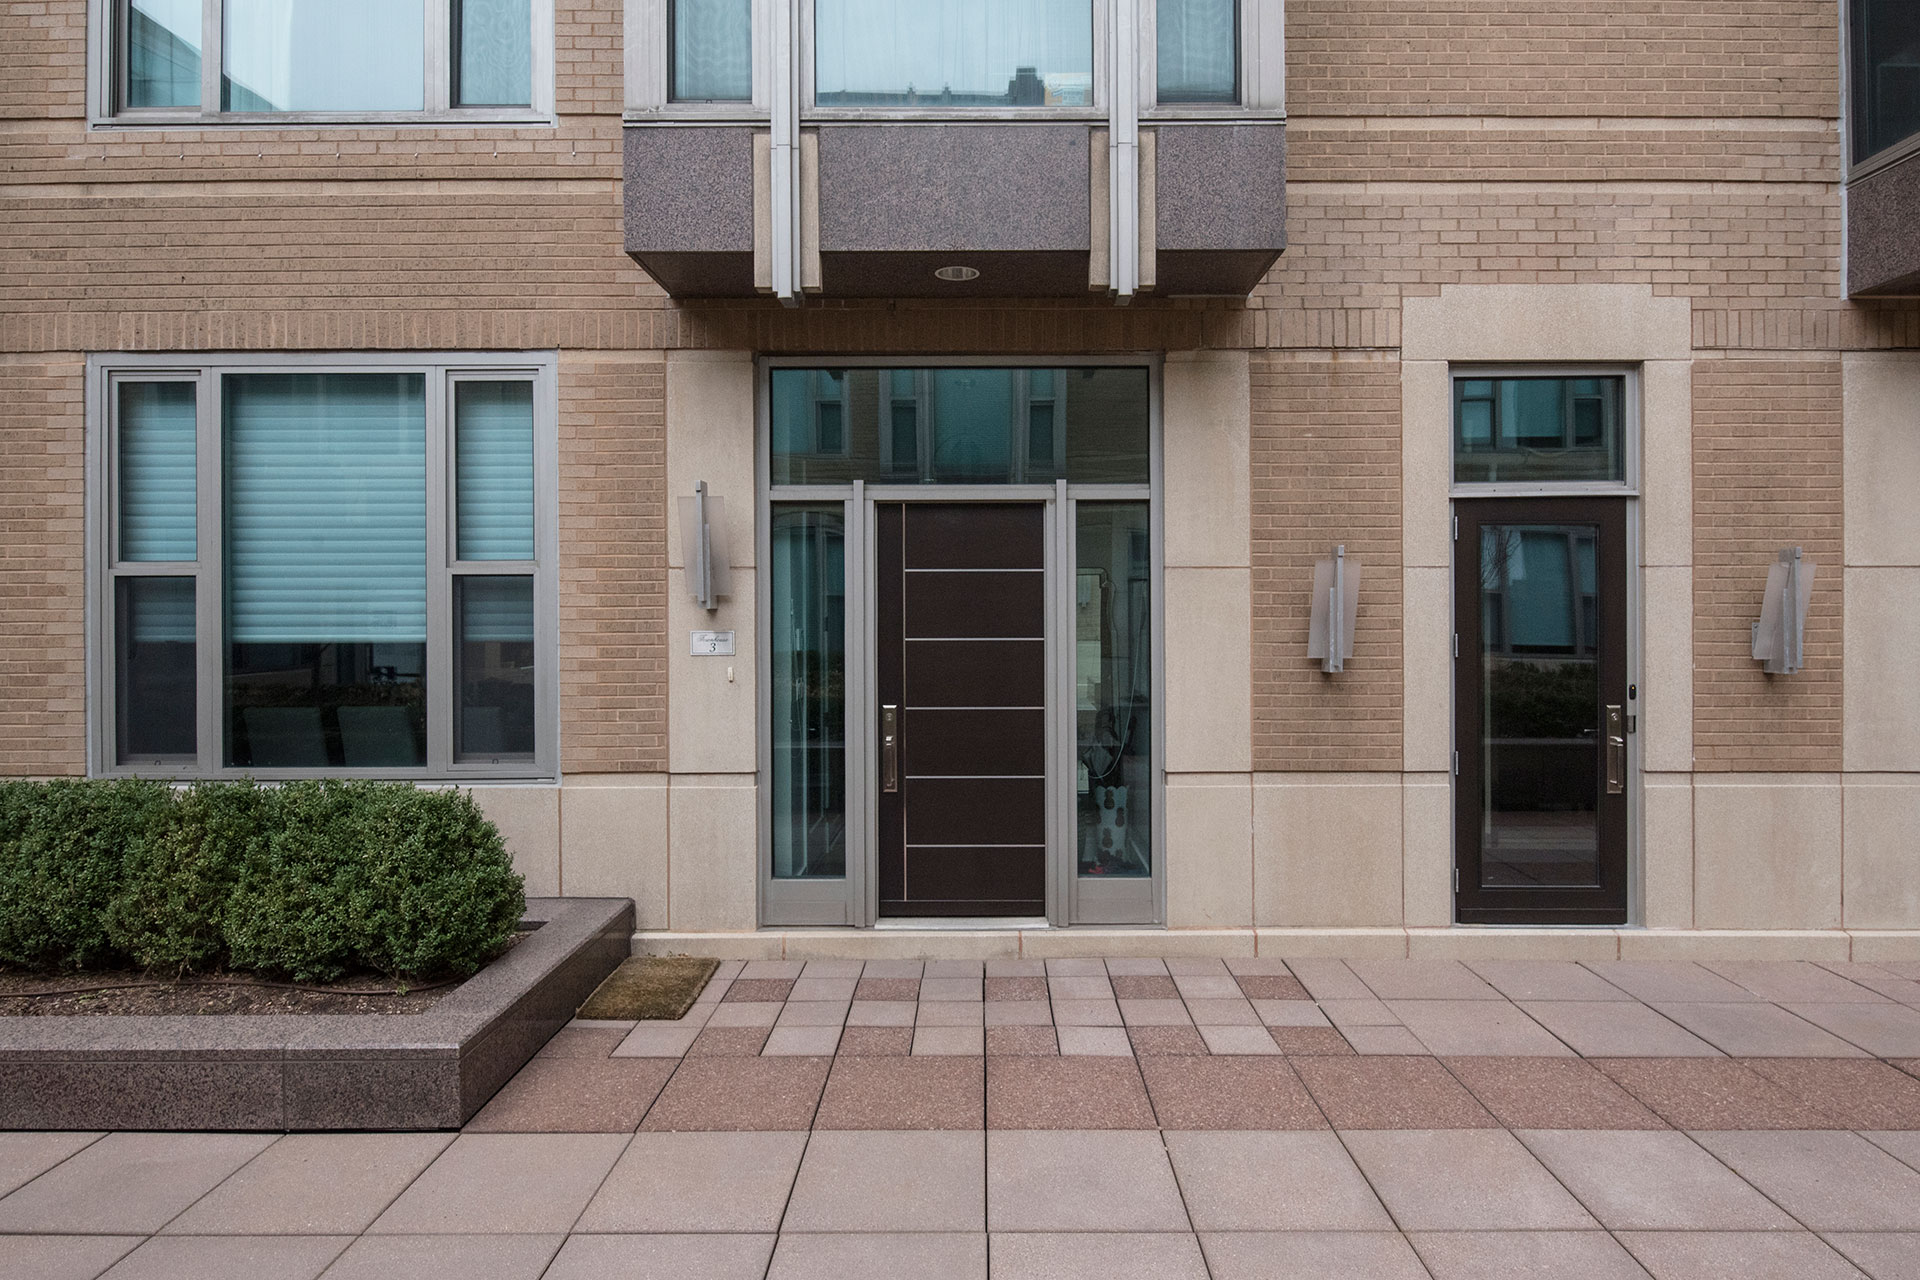 Modern Commercial Doors \u2013 33 W Ontario Street Chicago Townhomes - Featured Project by Glenview Haus & Modern Commercial Doors - 33 W Ontario Street Chicago Townhomes ...